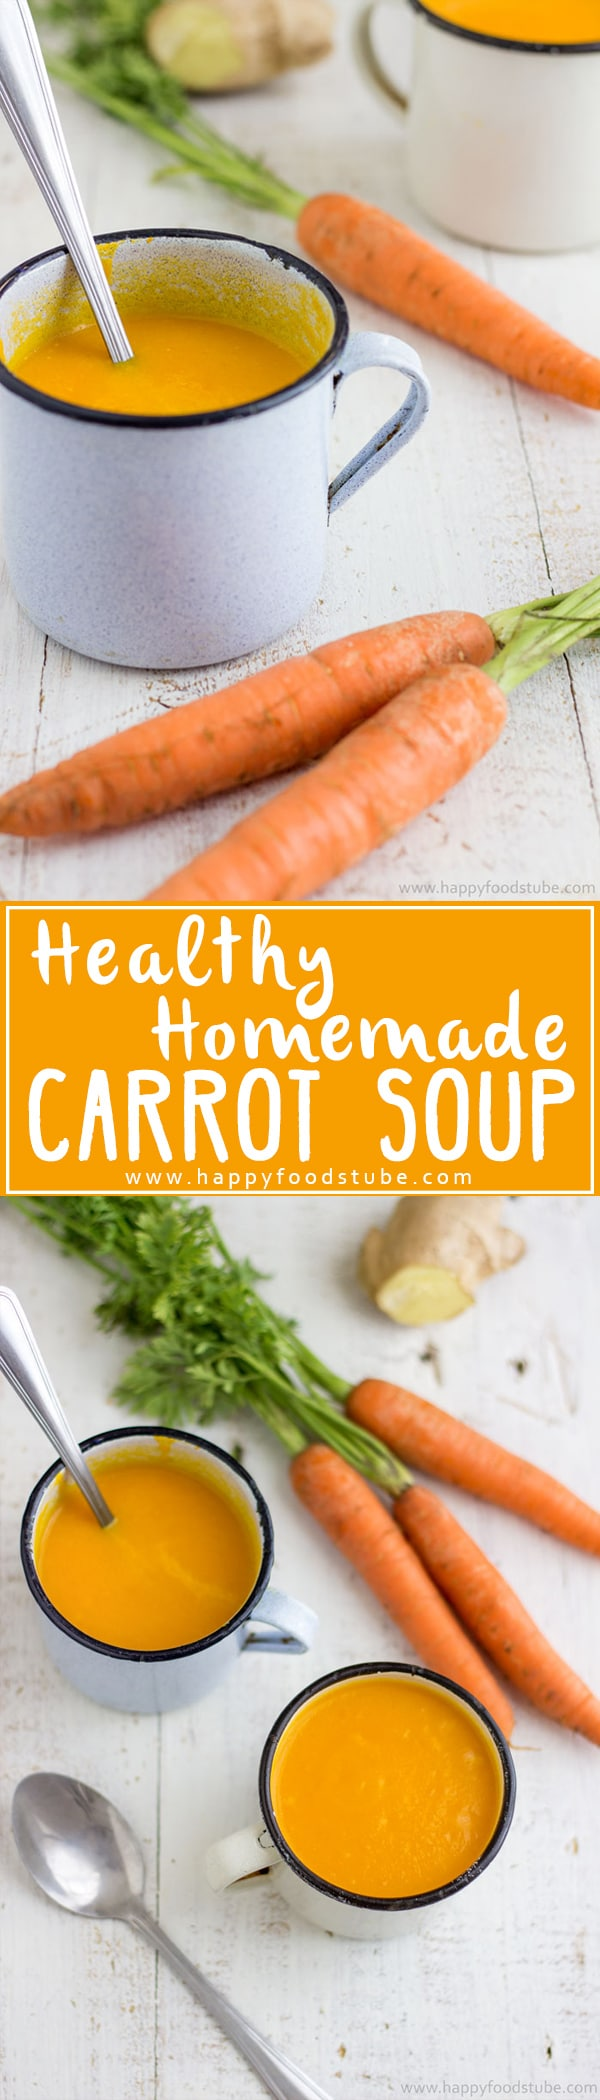 Homemade Healthy Carrot Soup with Ginger. It's creamy, sweet and rich in antioxidants! Only 5 ingredients. Ready in 30 minutes | happyfoodstube.com